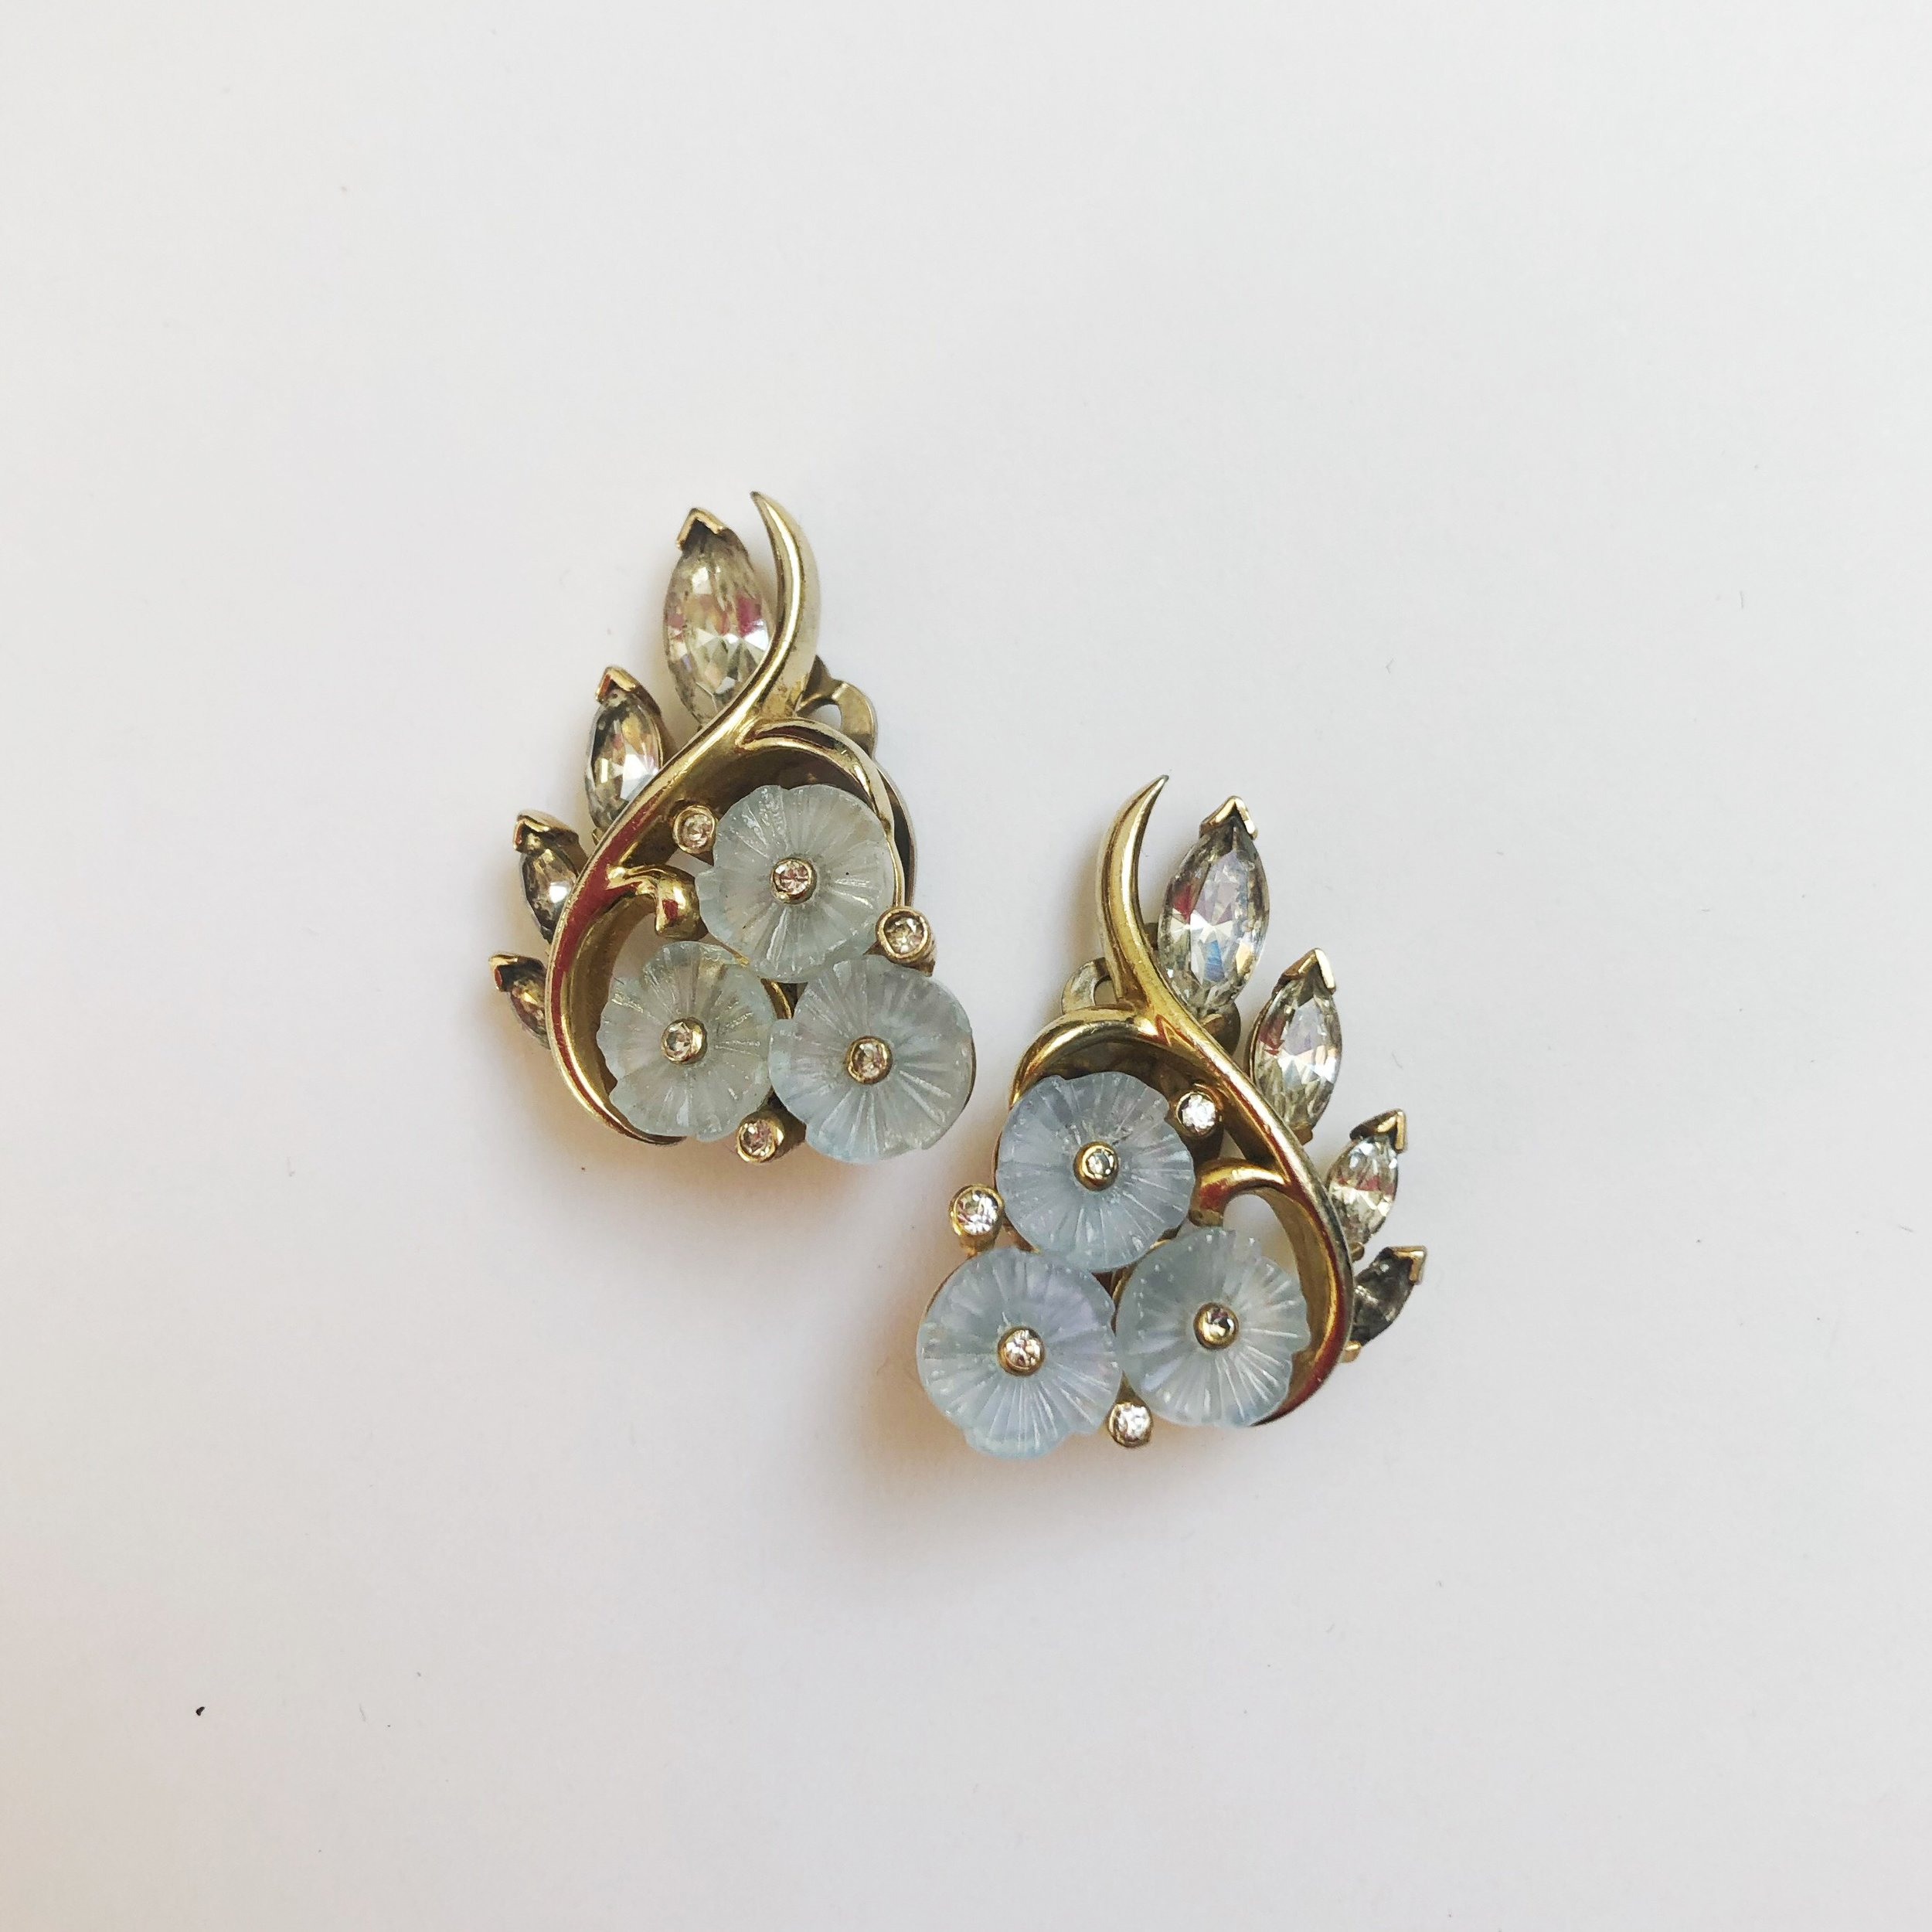 Vintage 1950s. Signed, Jomaz. Earrings $39.00